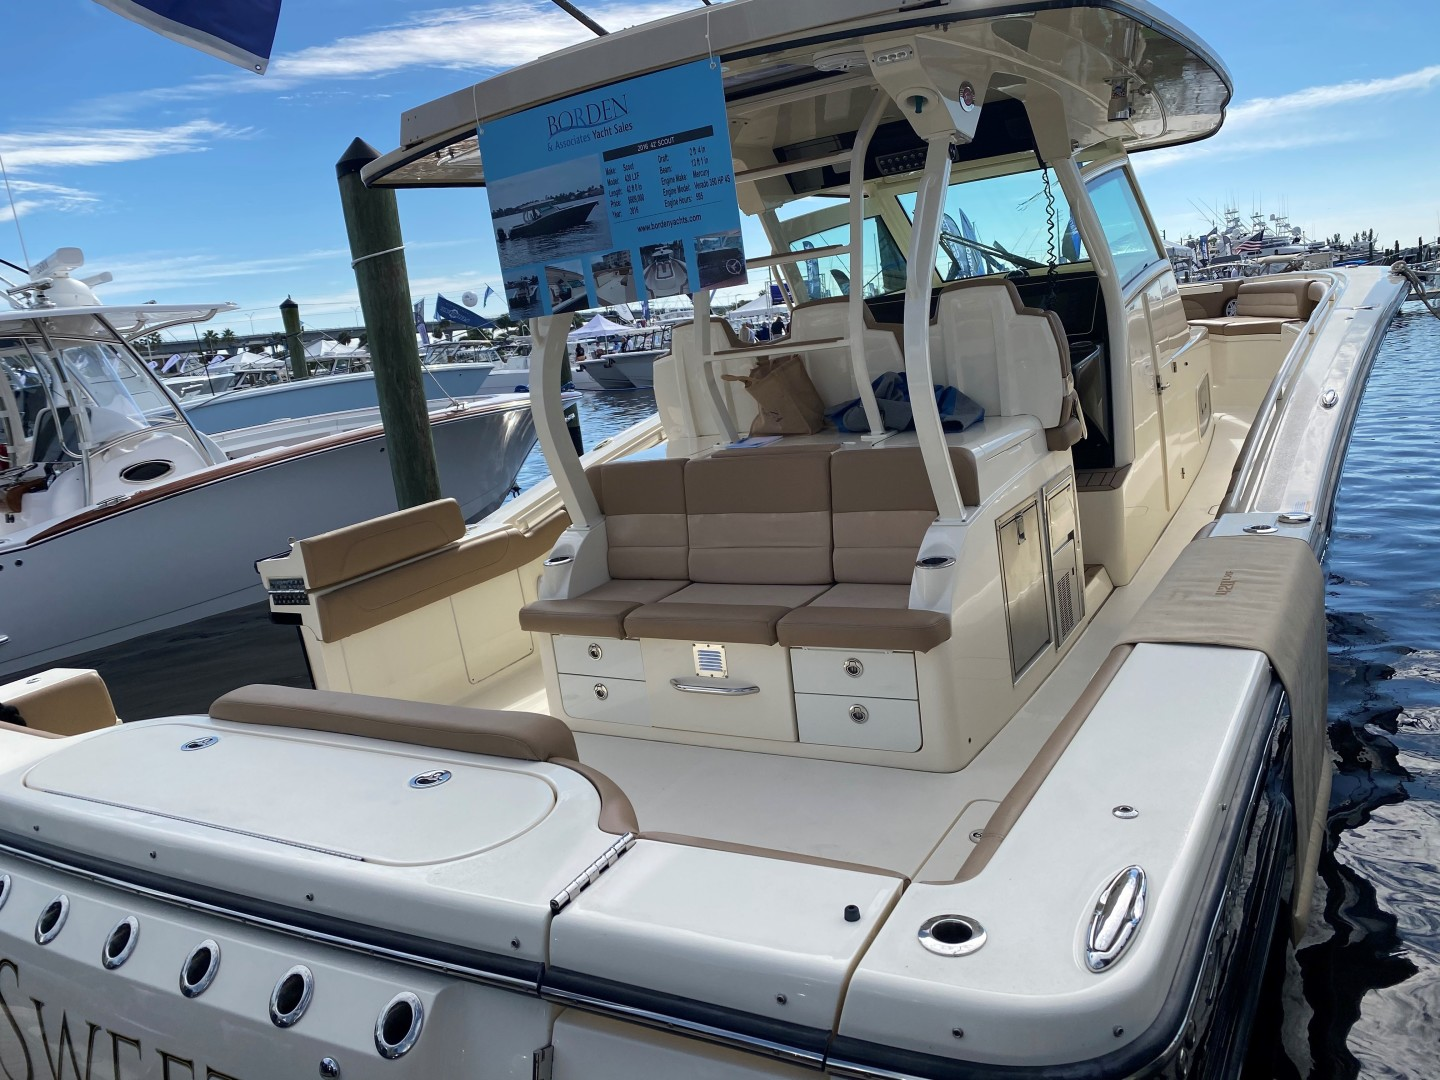 Scout-420 LXF 2016-Scout 420 LXF Delray Beach-Florida-United States-1593756 | Thumbnail